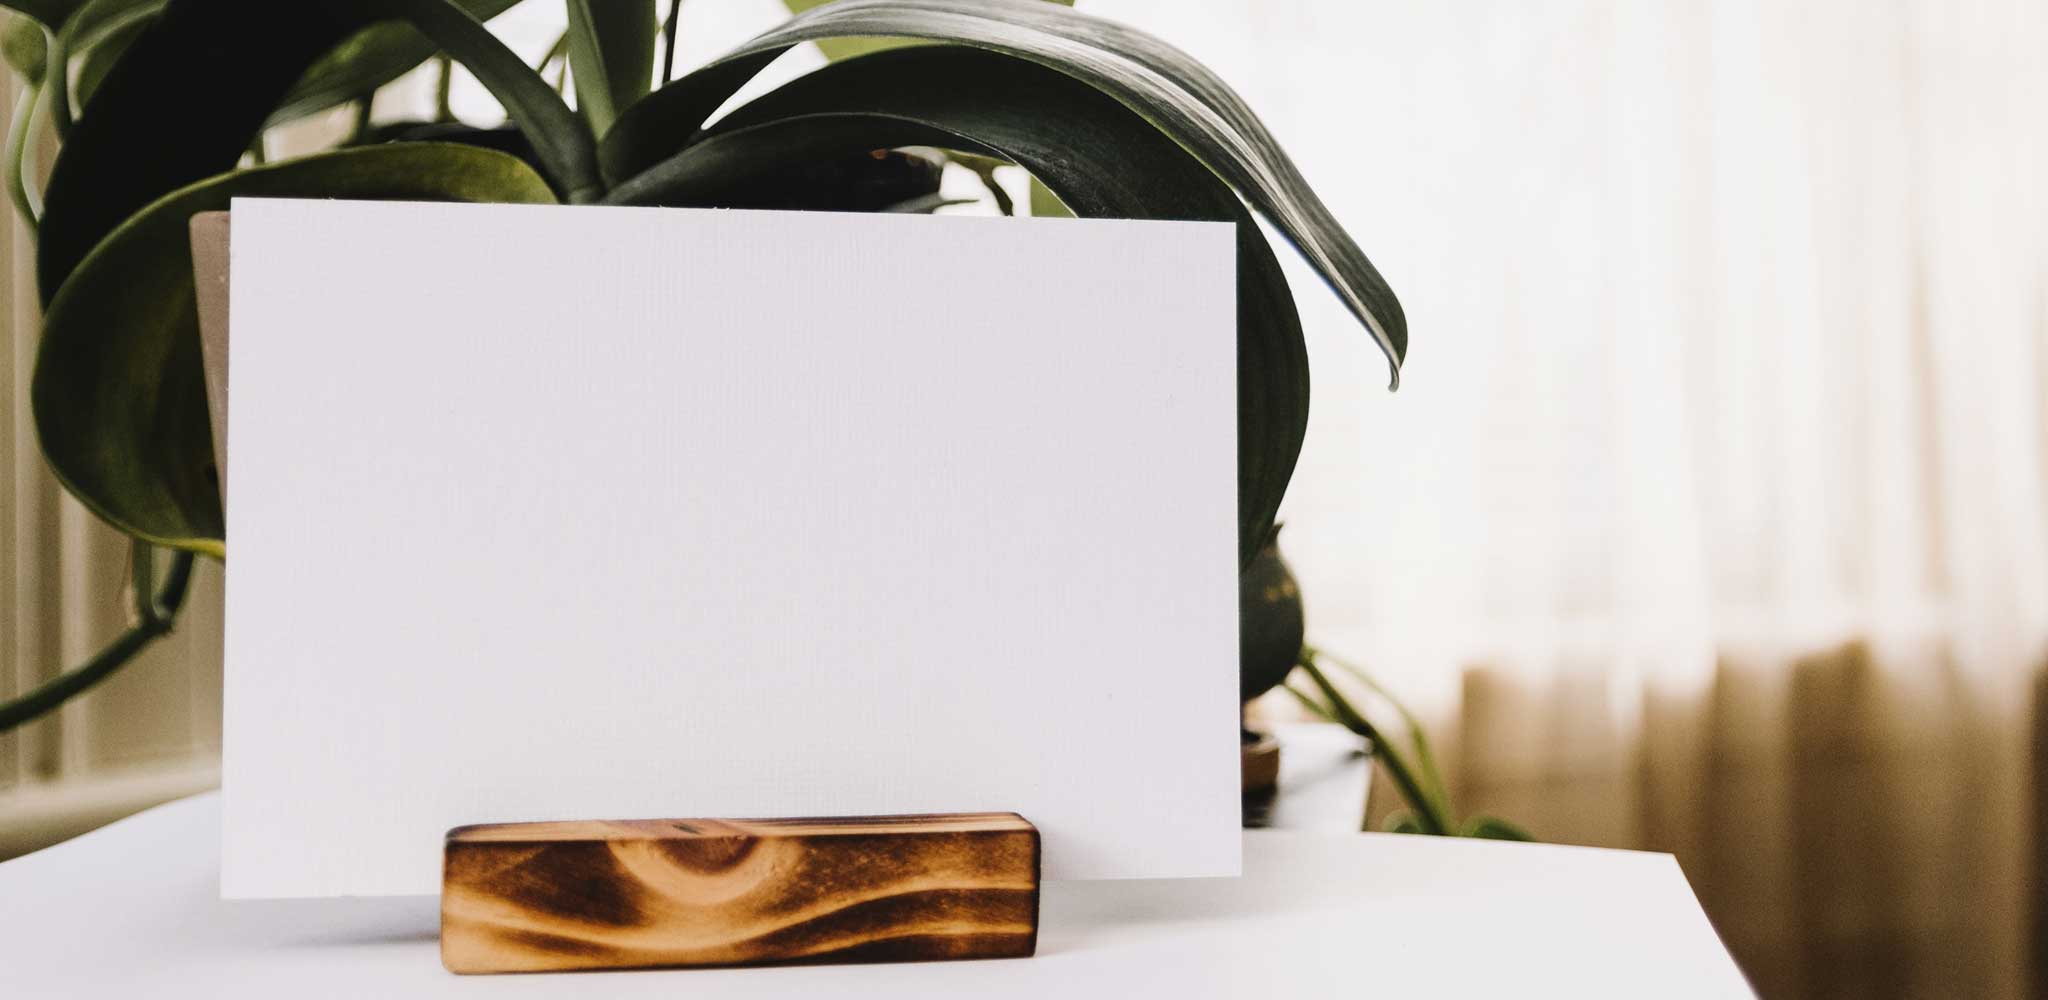 image of a white piece of paper in a wooden stand on a table